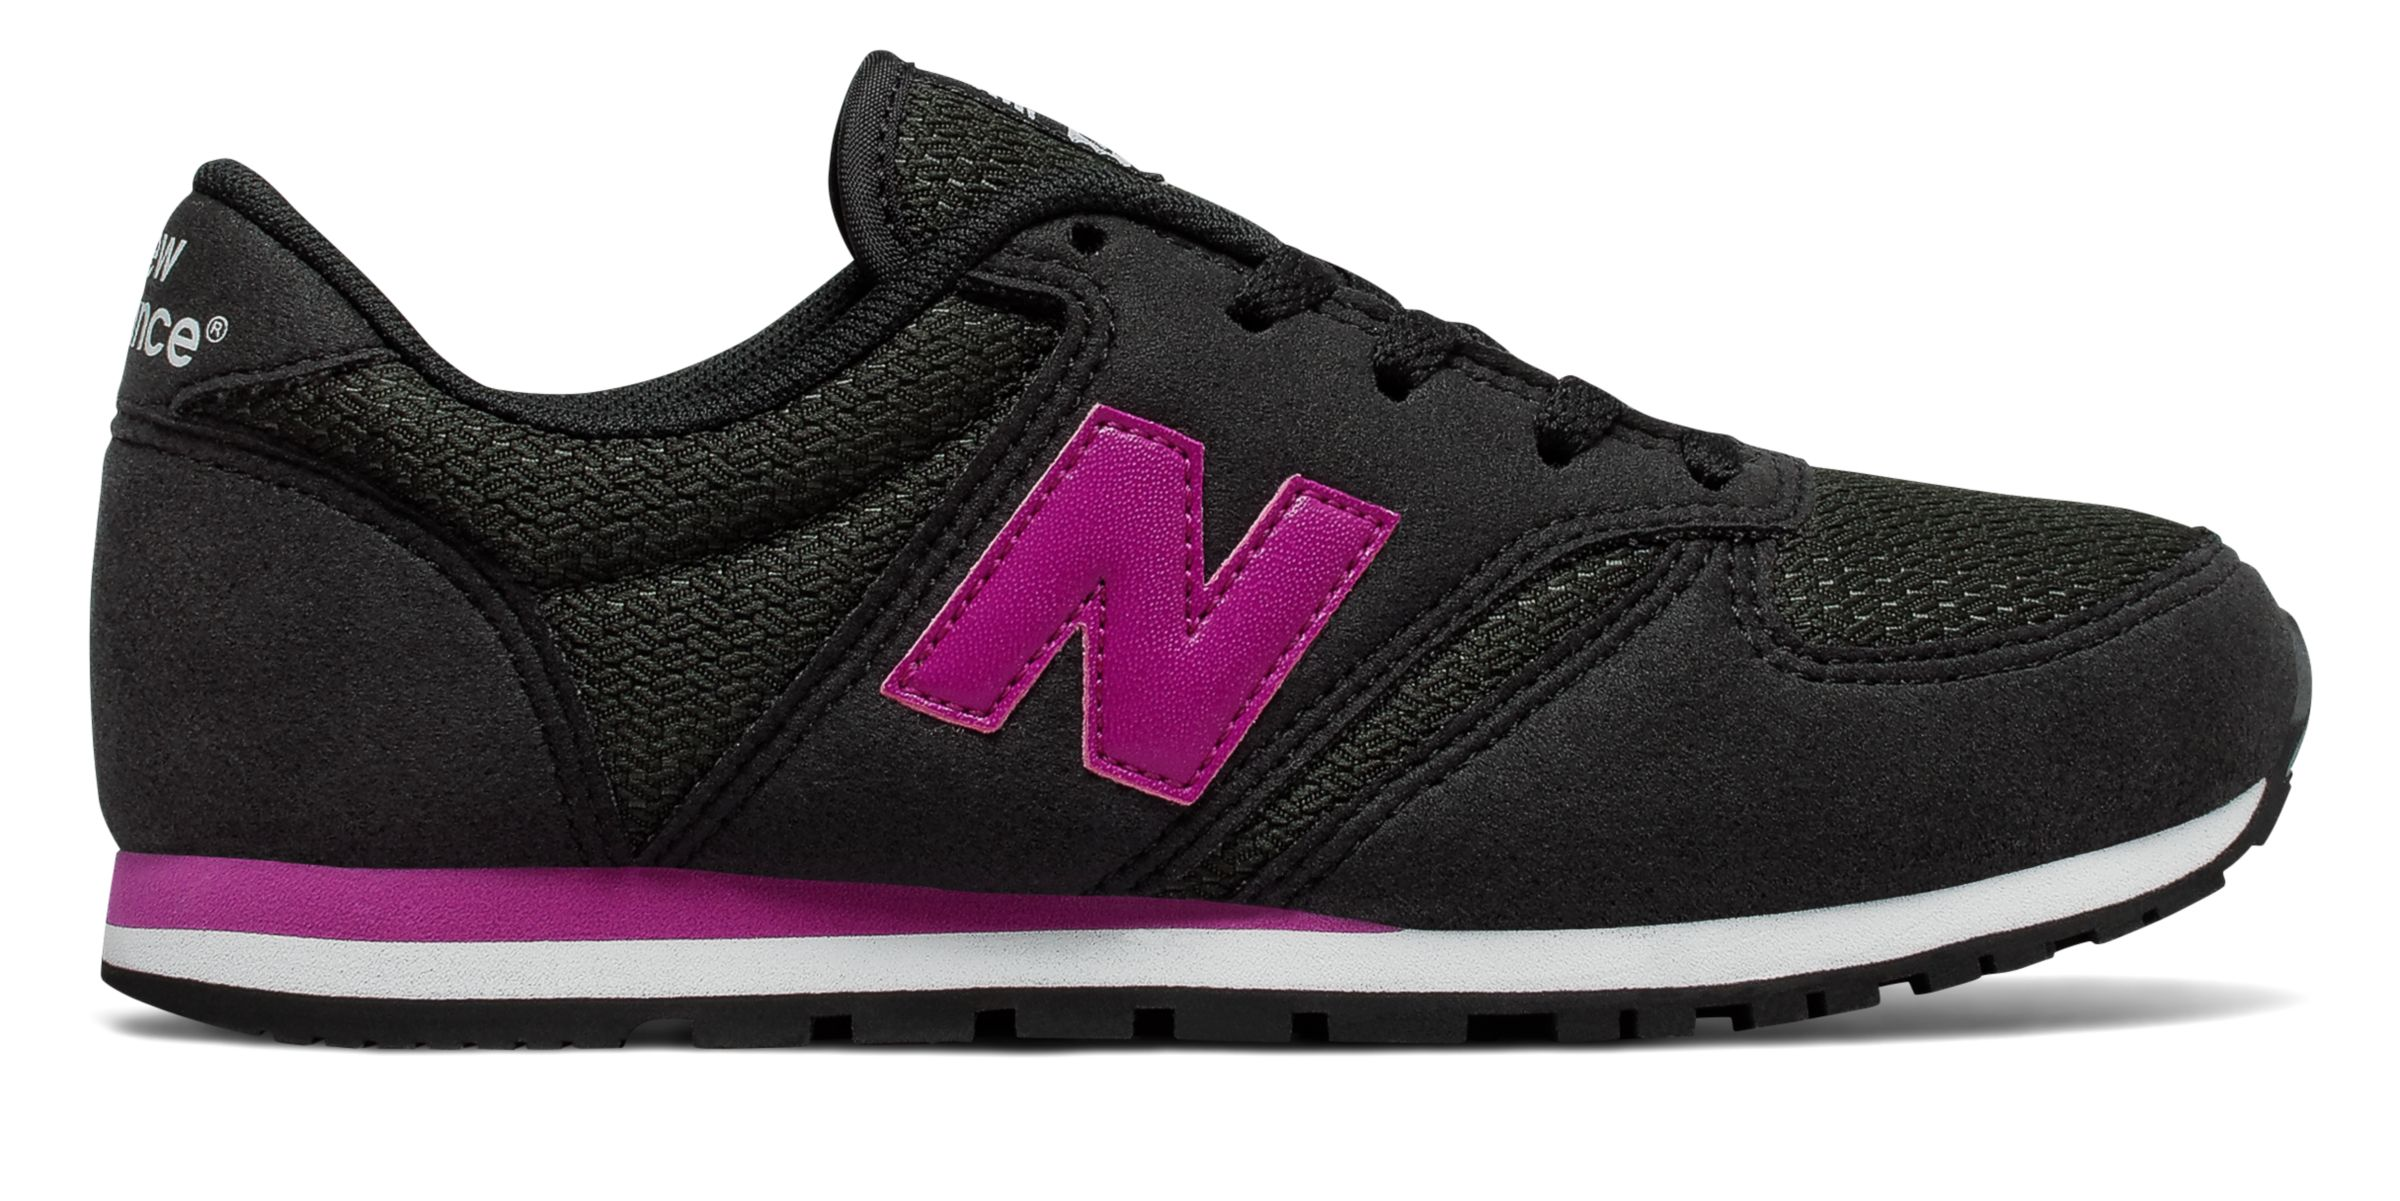 NB 420 New Balance, Black with Pink